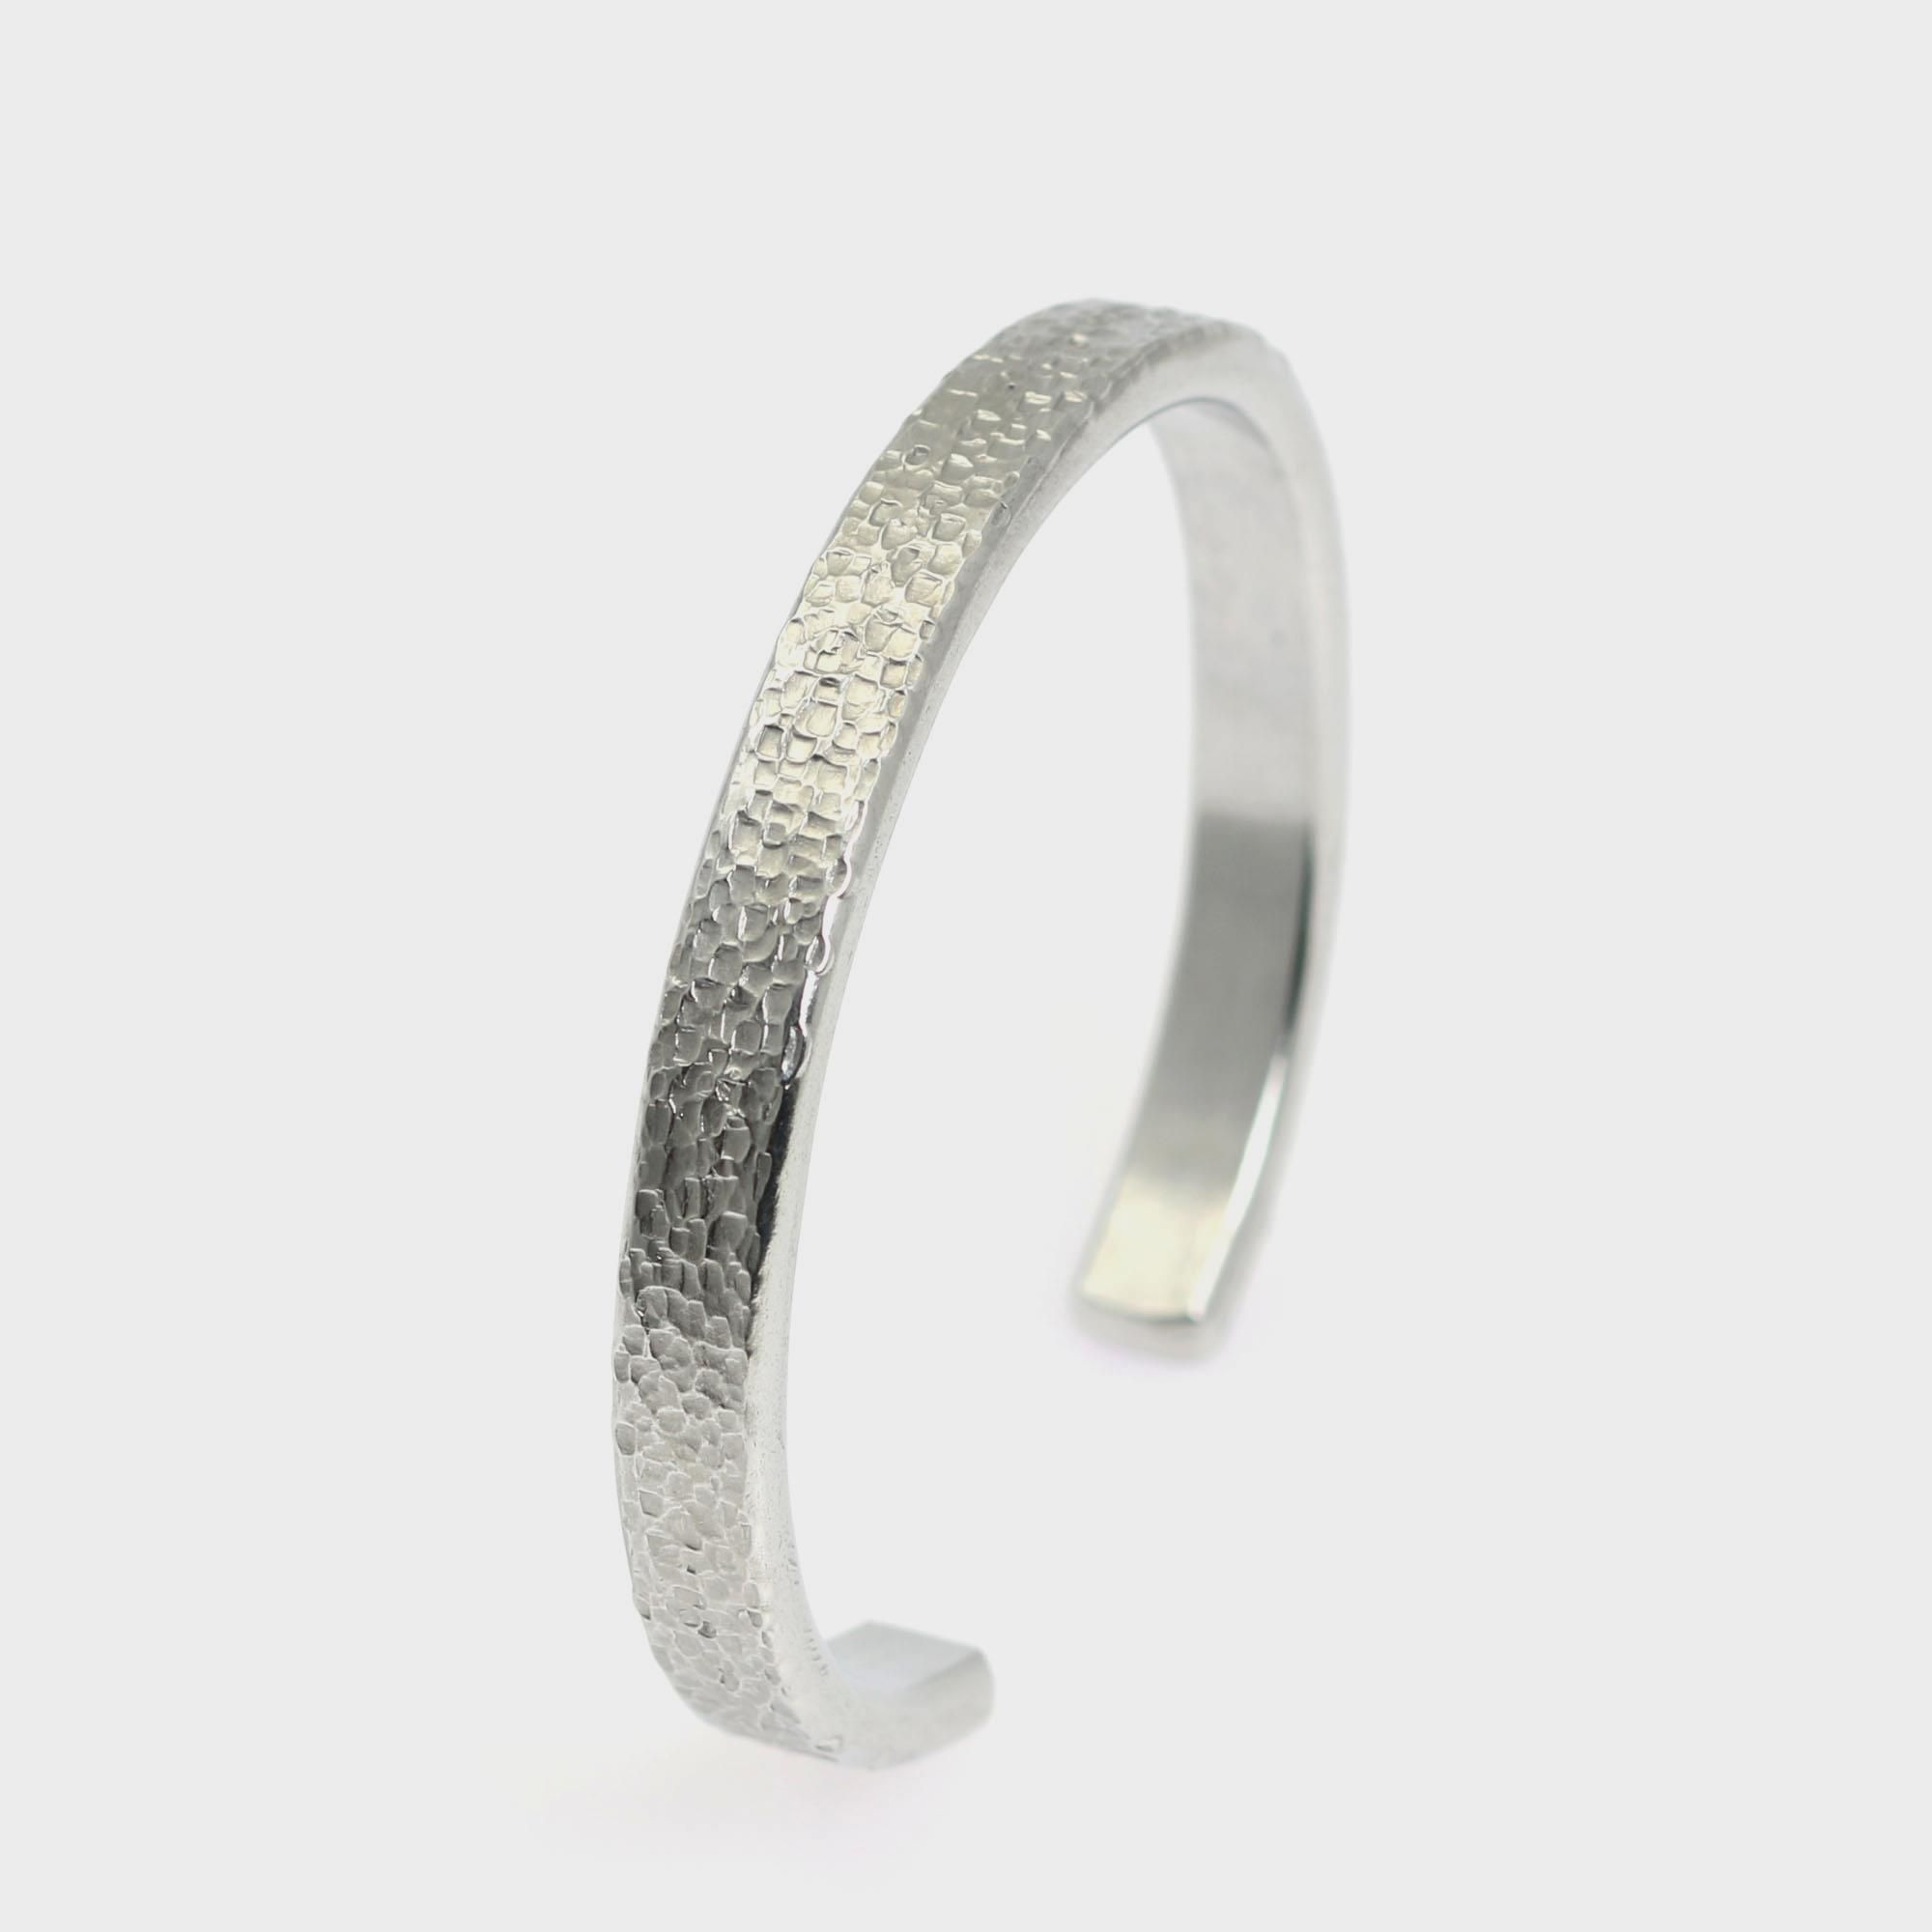 Just Listed Attractive 7mm Thin Texturized Silver Tone Cuff Bracelet Presented on #Amazon #Cuffs http://www.amazon.com/dp/B01AISTNNS